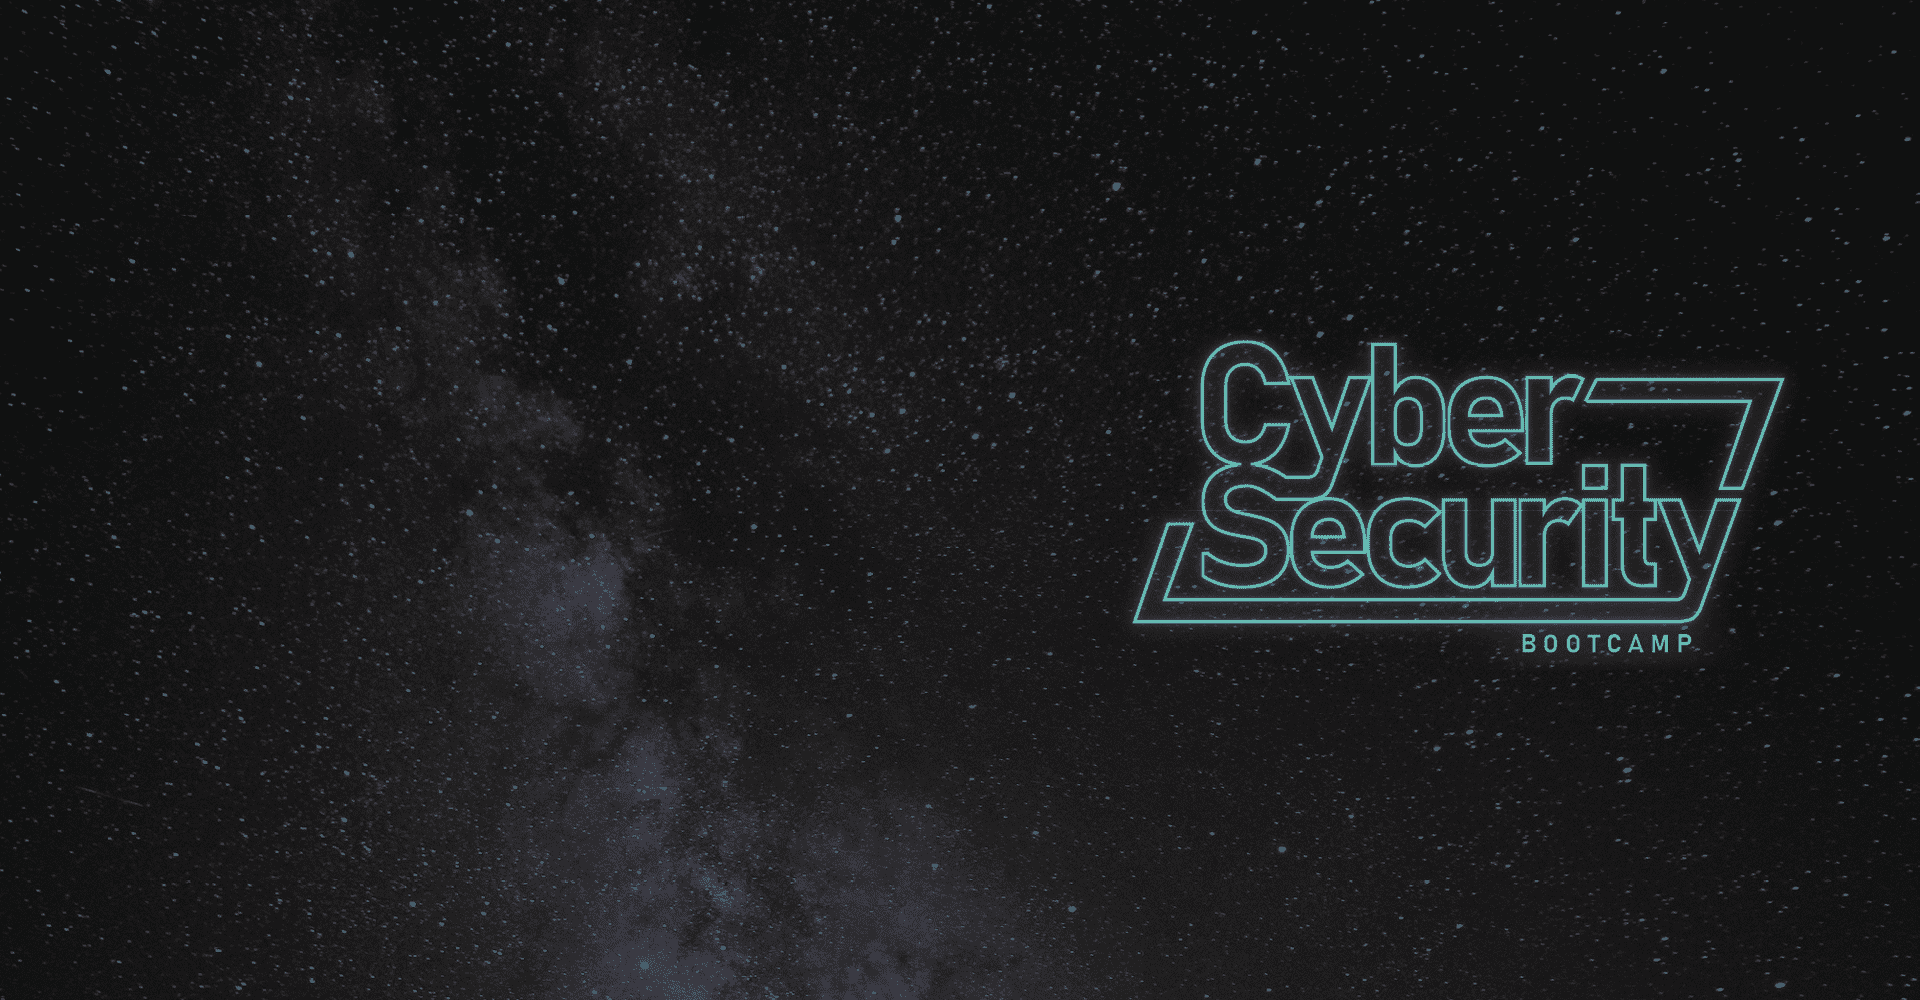 Cyber Security Bootcamp on starry background